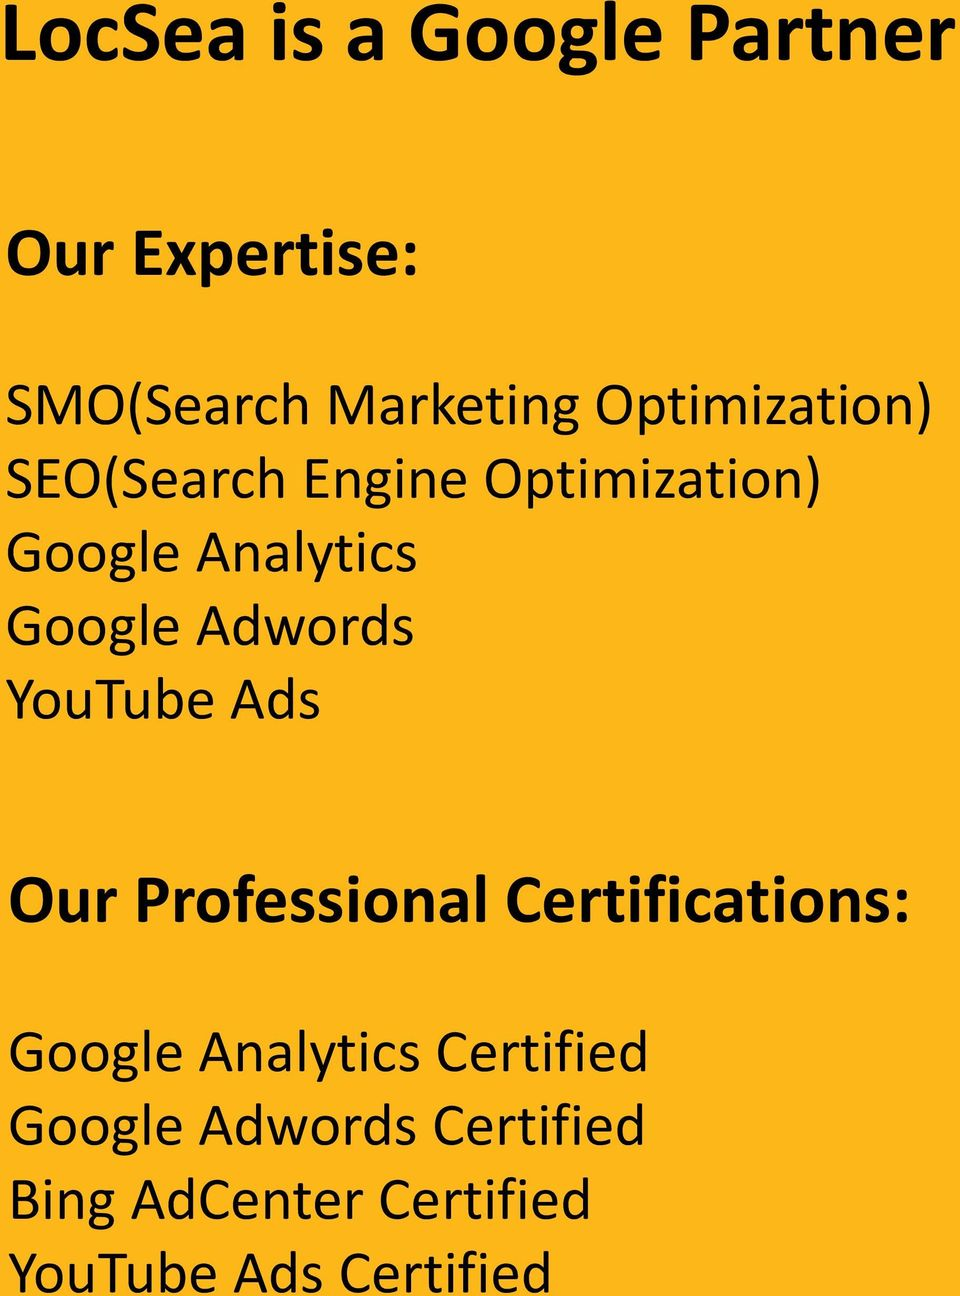 Adwords YouTube Ads Our Professional Certifications: Google Analytics